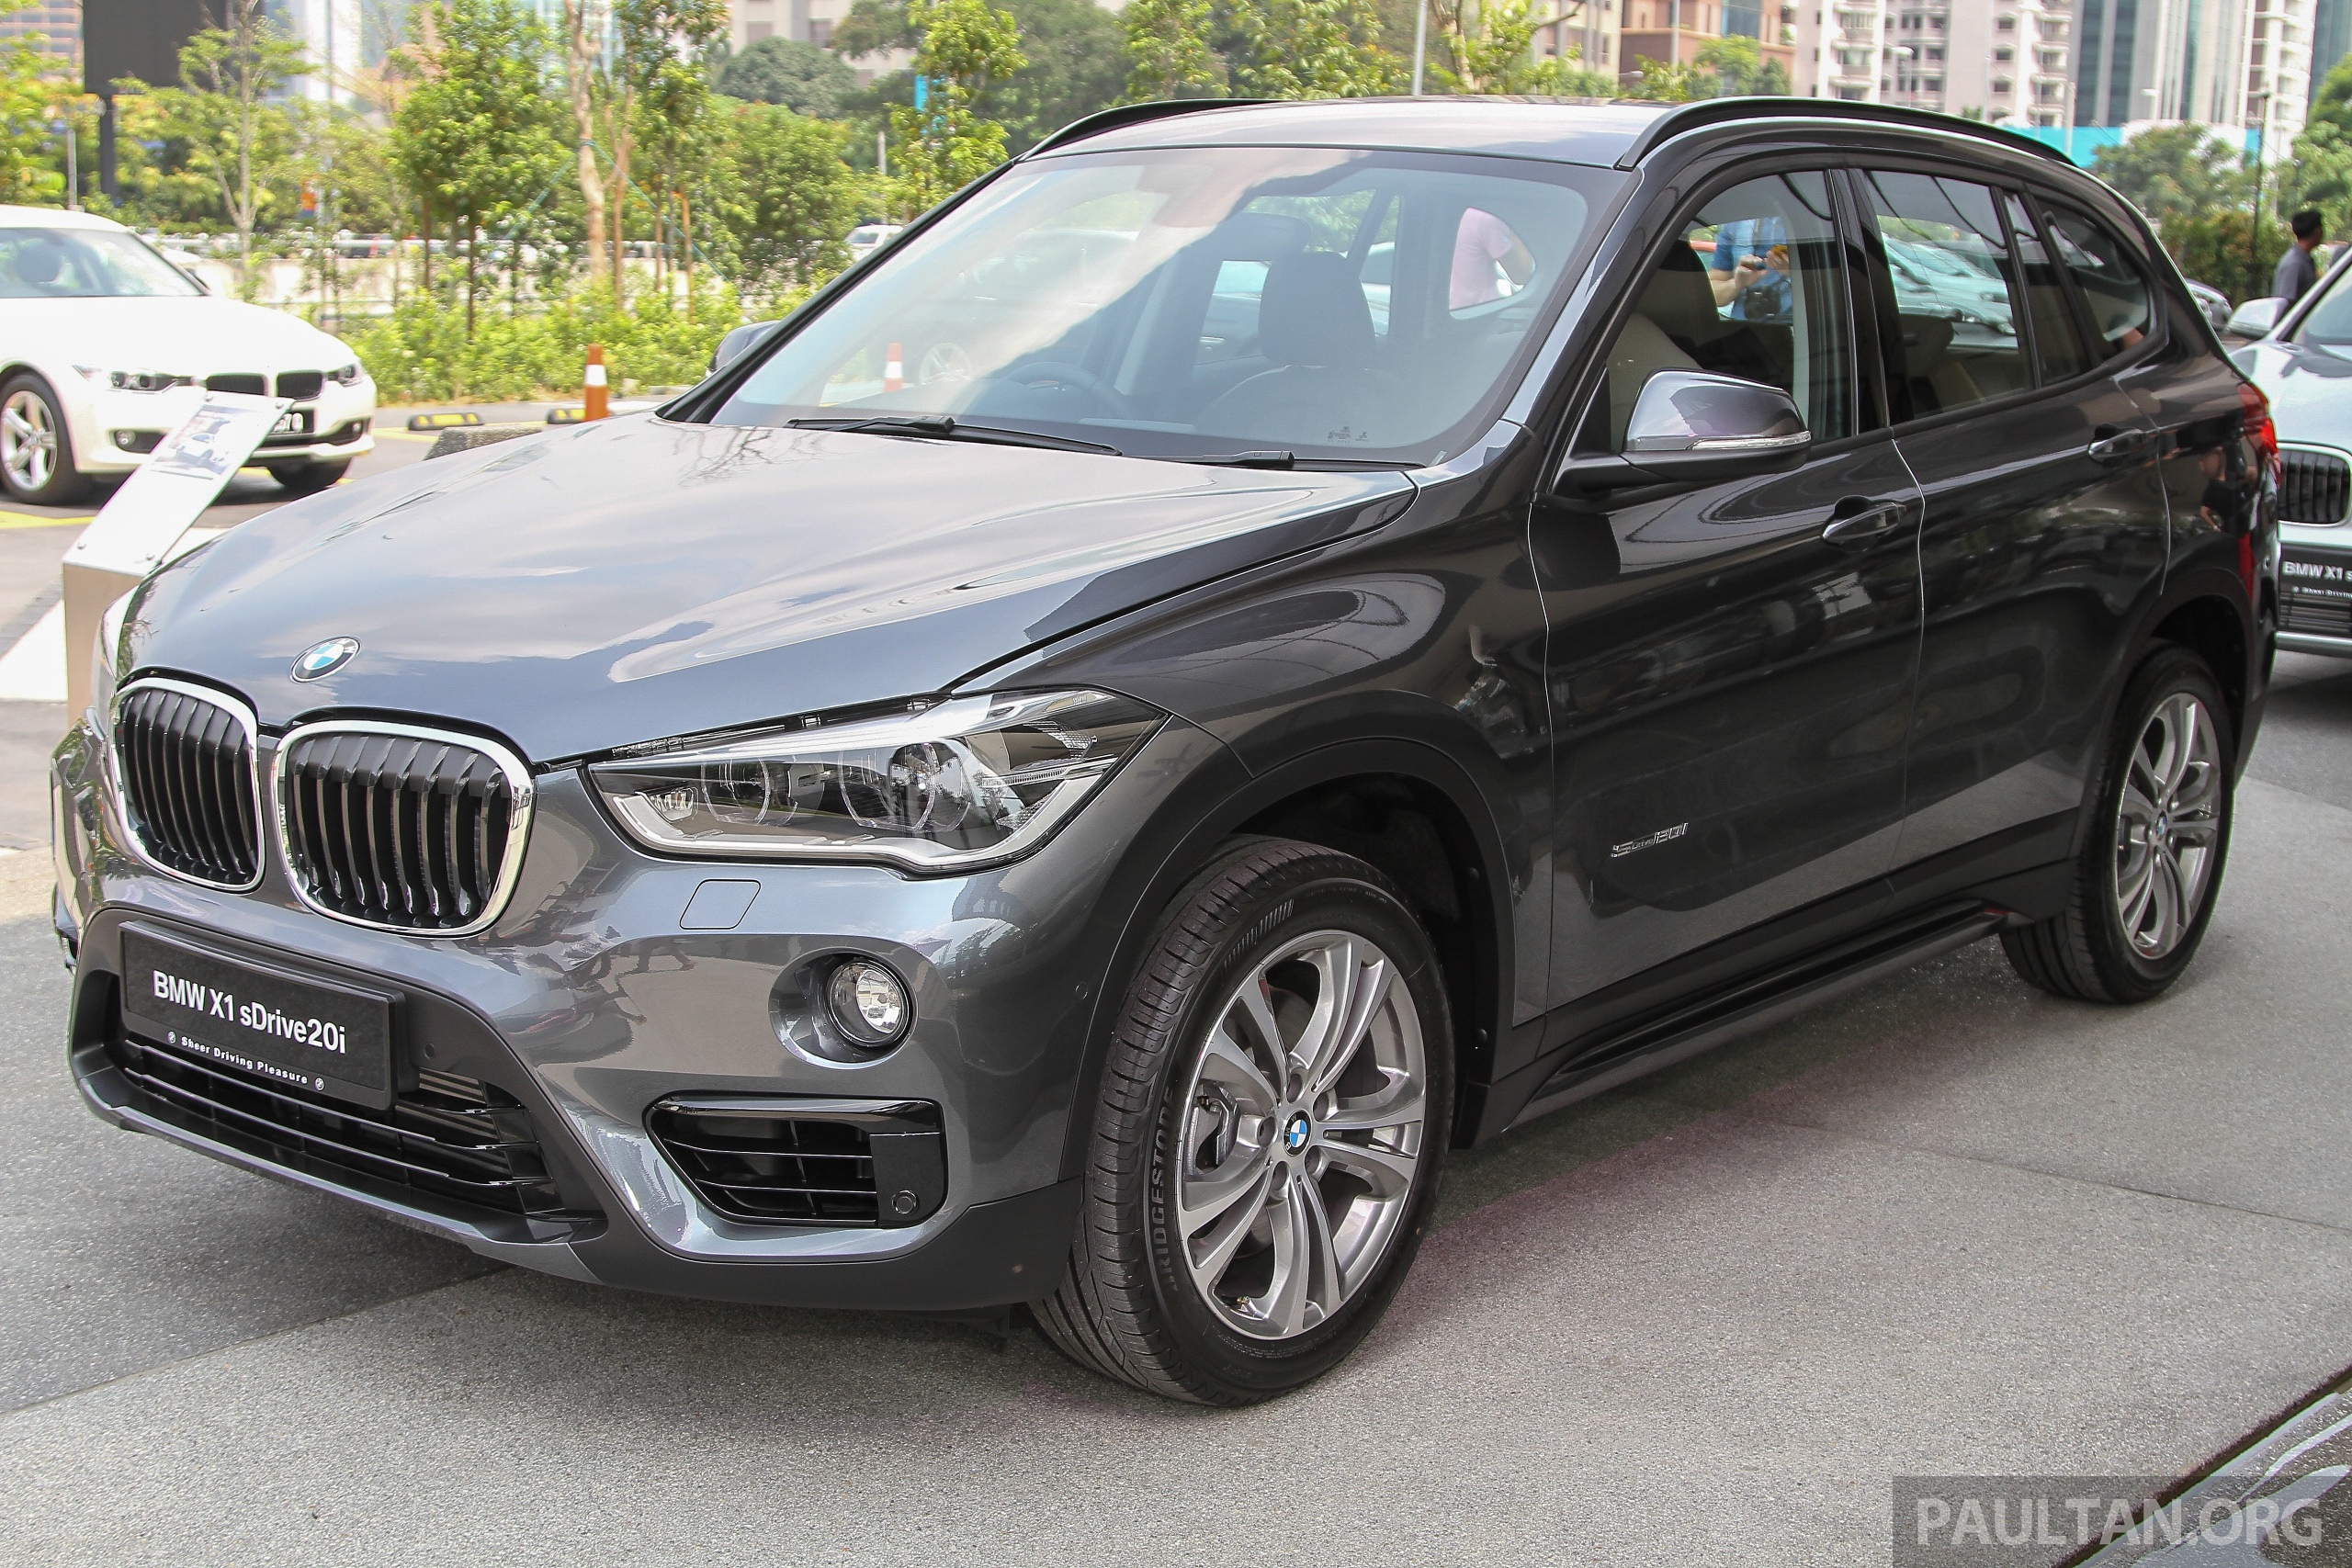 F48 Bmw X1 Sdrive20i Launched In M Sia Rm280k Image 390292